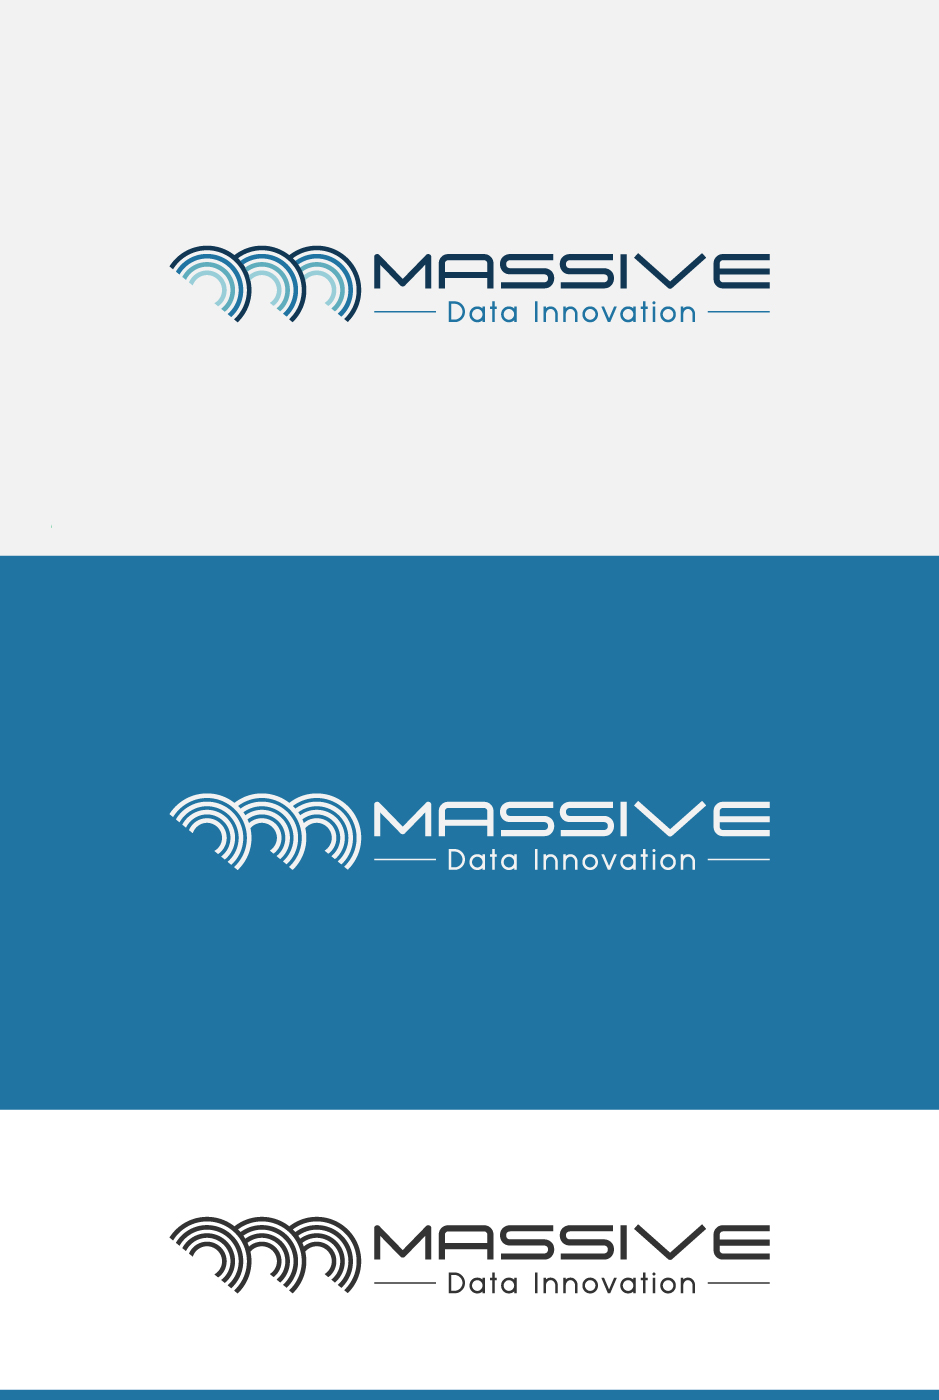 Logo Design by Sami Baig - Entry No. 494 in the Logo Design Contest MASSIVE LOGO.